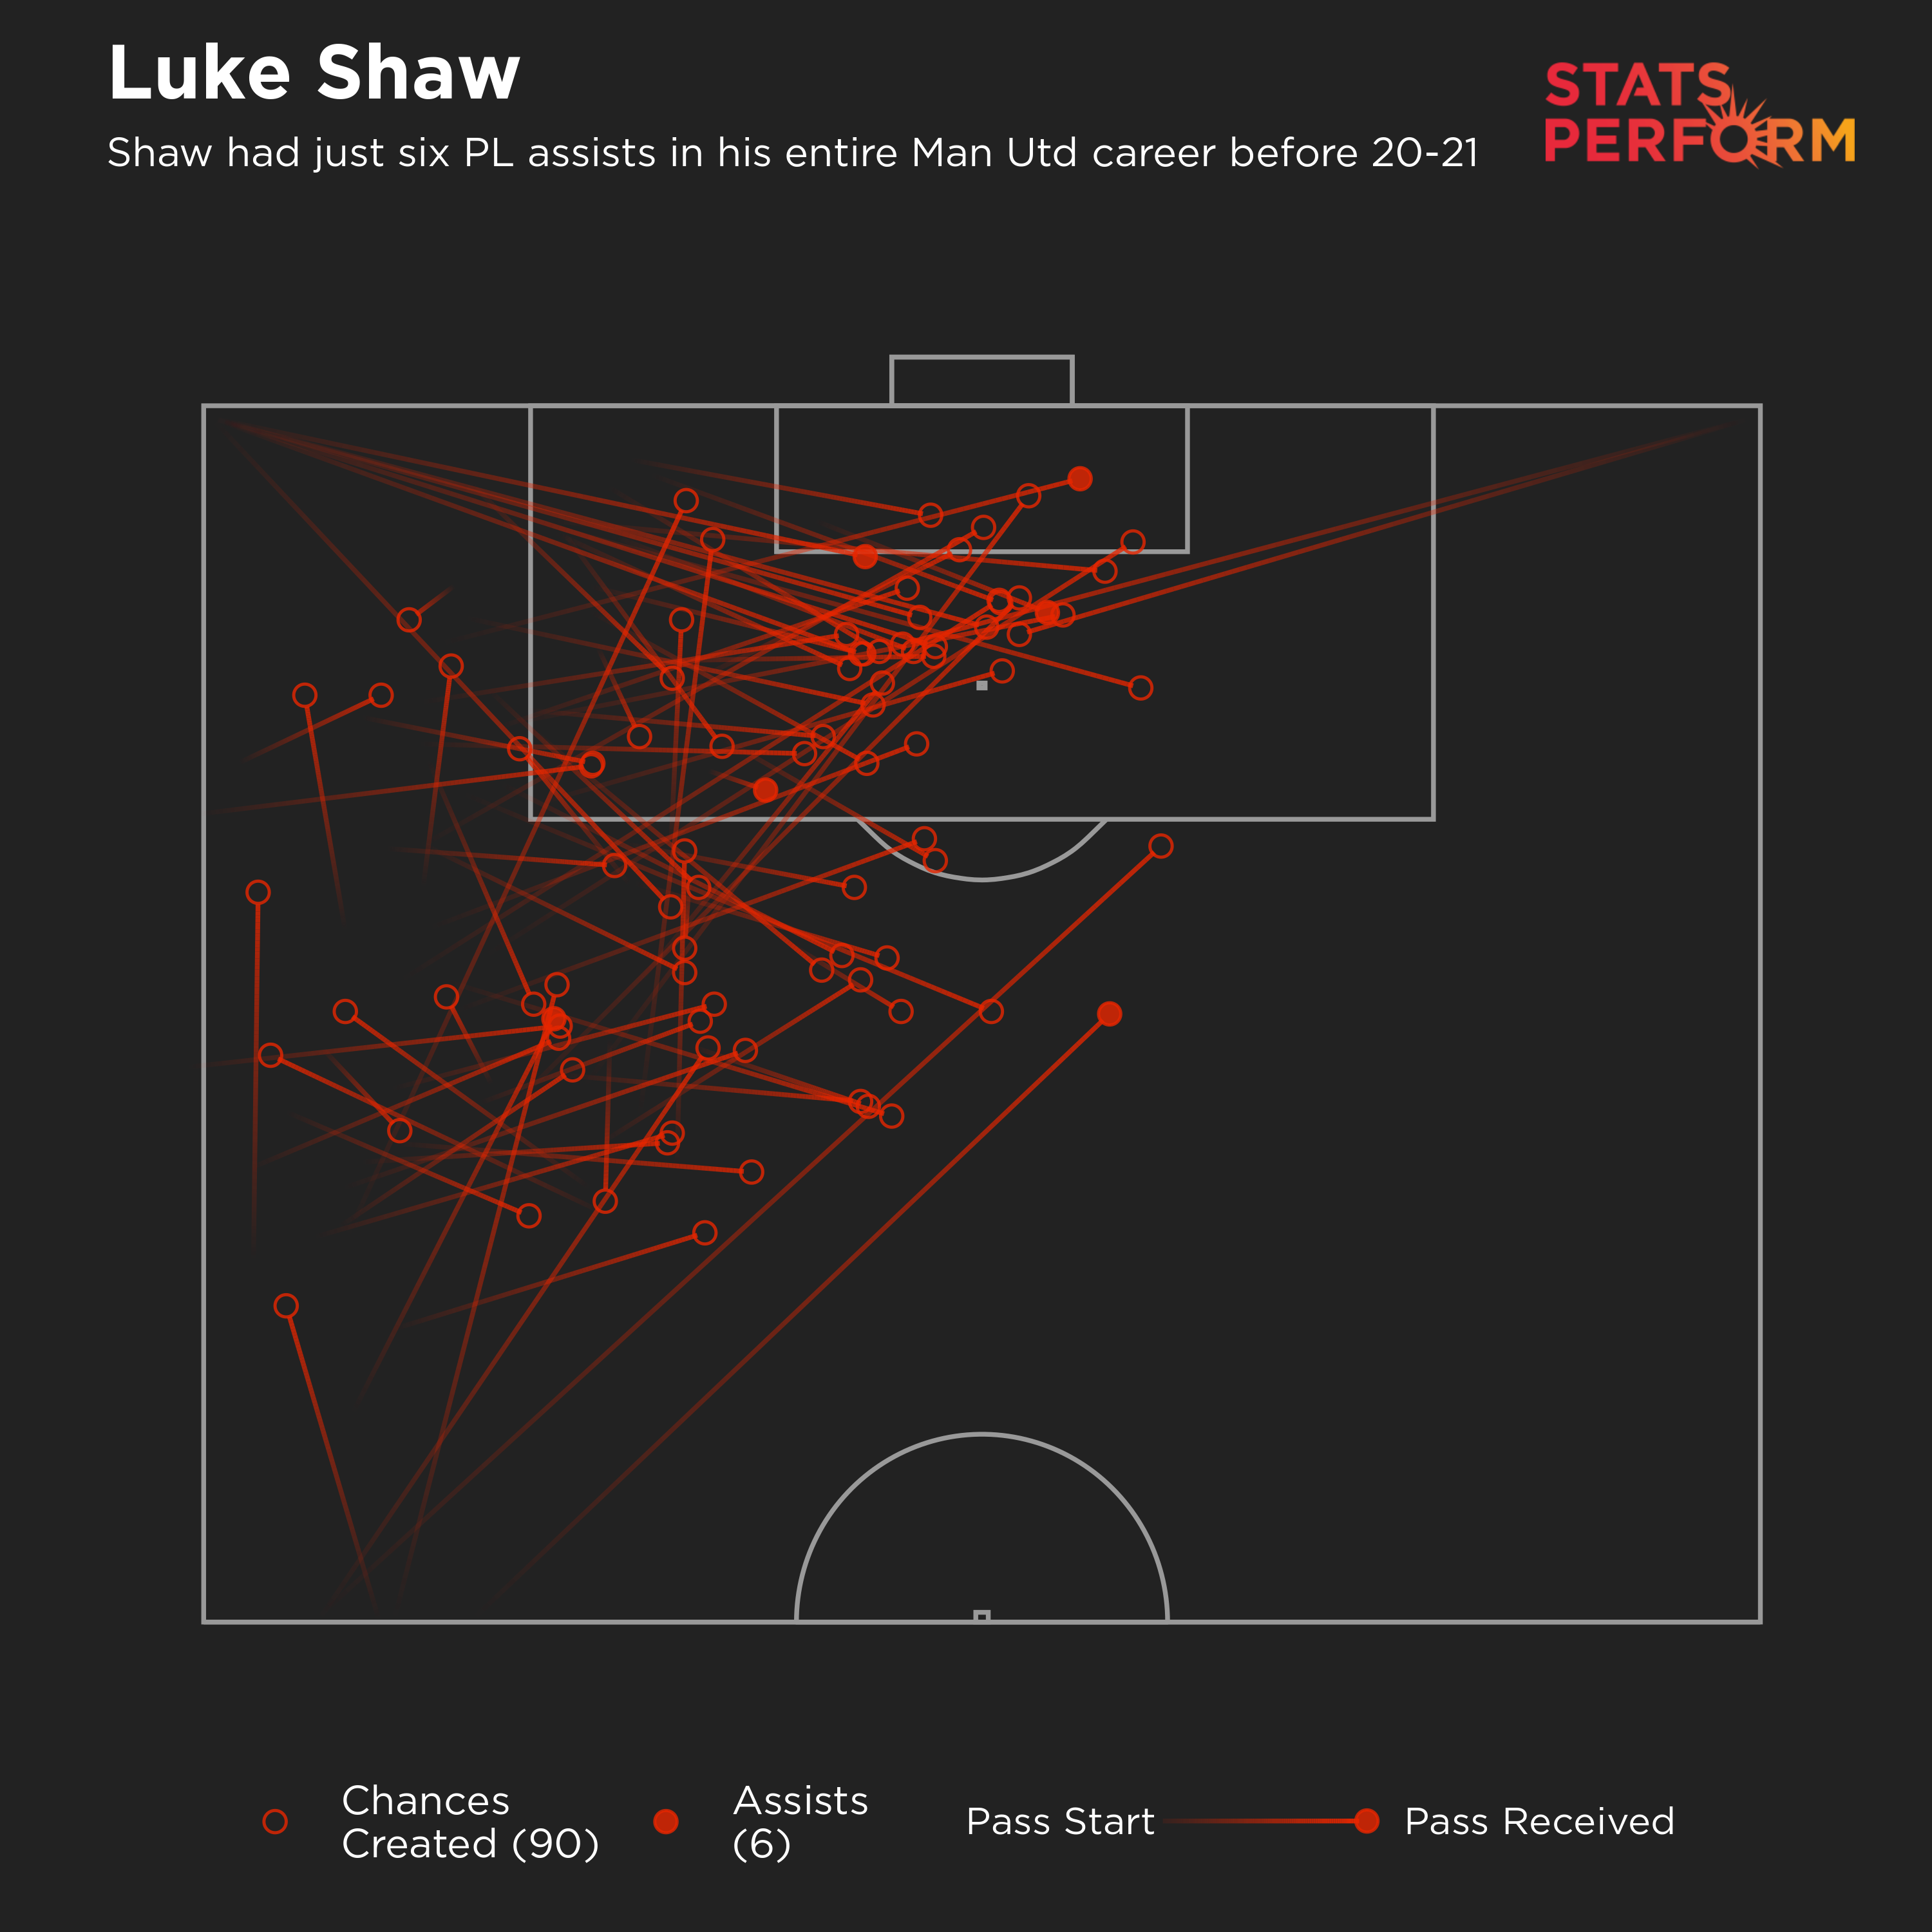 Luke Shaw's chances created for Man United in the Premier League before 2020-21